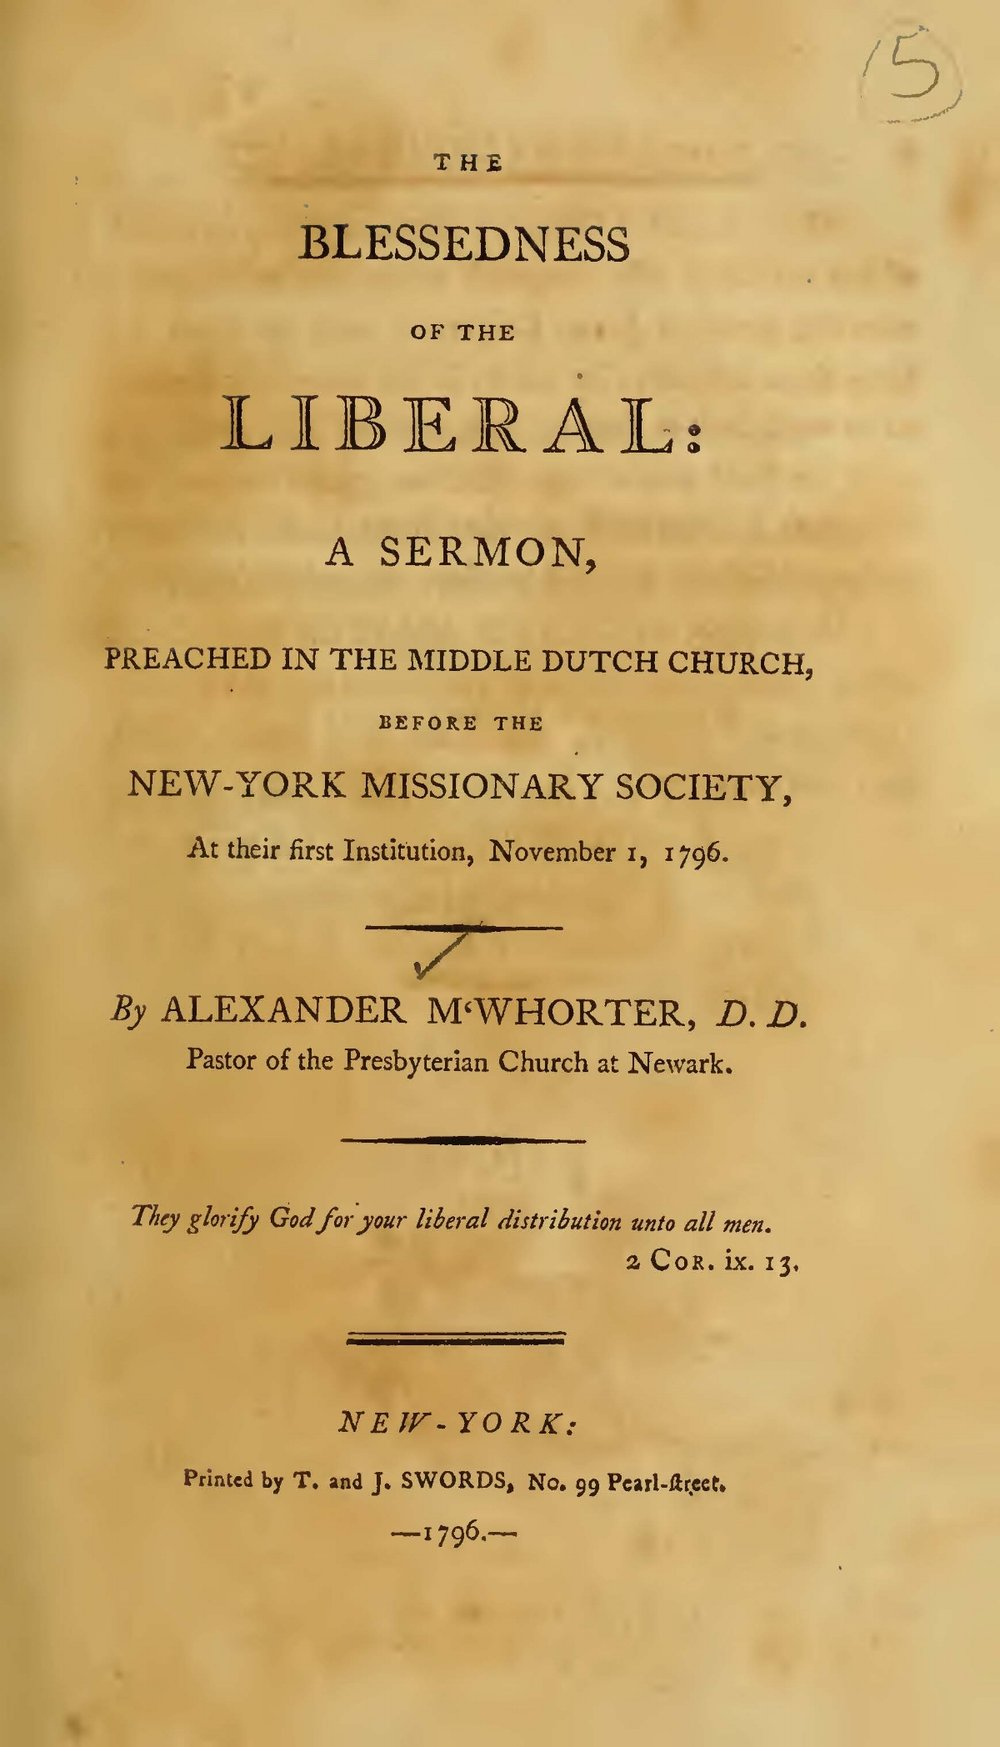 MacWhorter, Alexander, The Blessedness of the Liberal Title Page.jpg